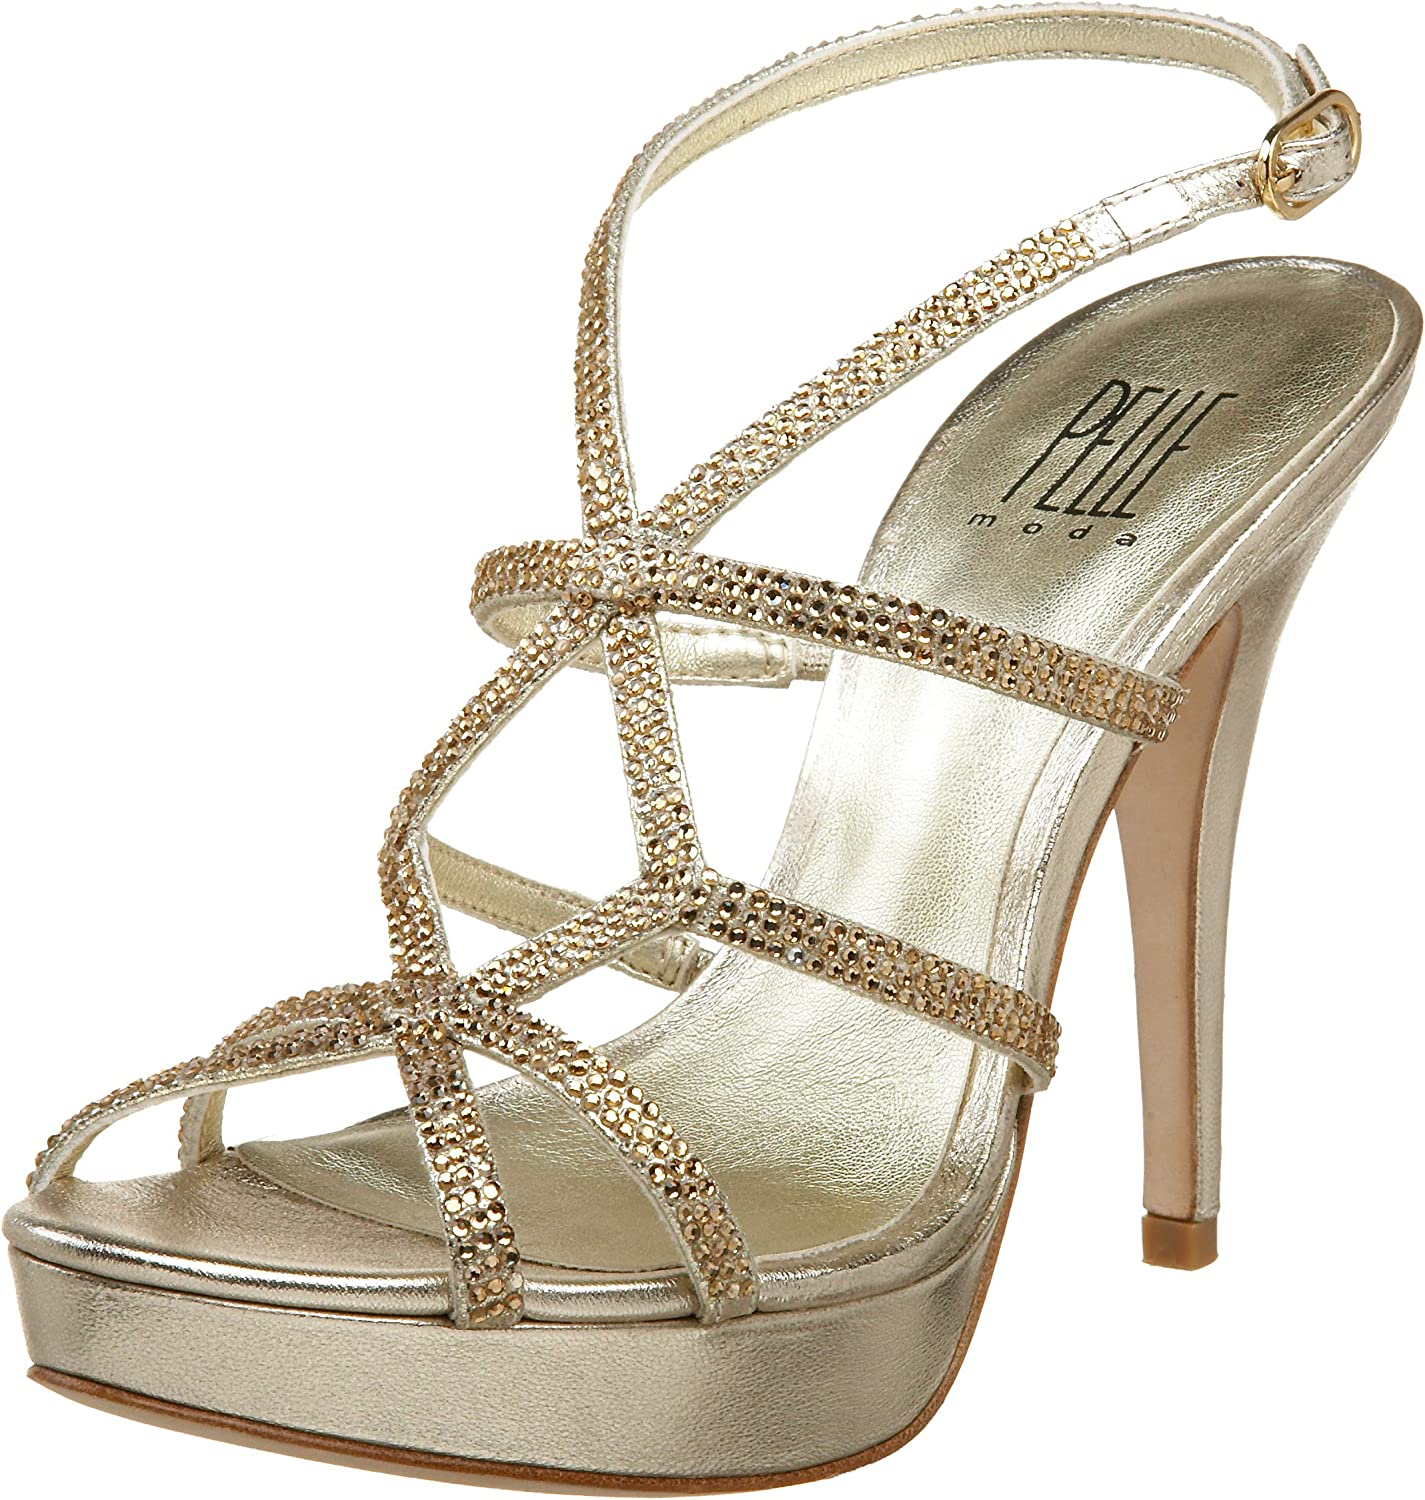 Pelle Moda Women's Vinton Platform Dress Sandal